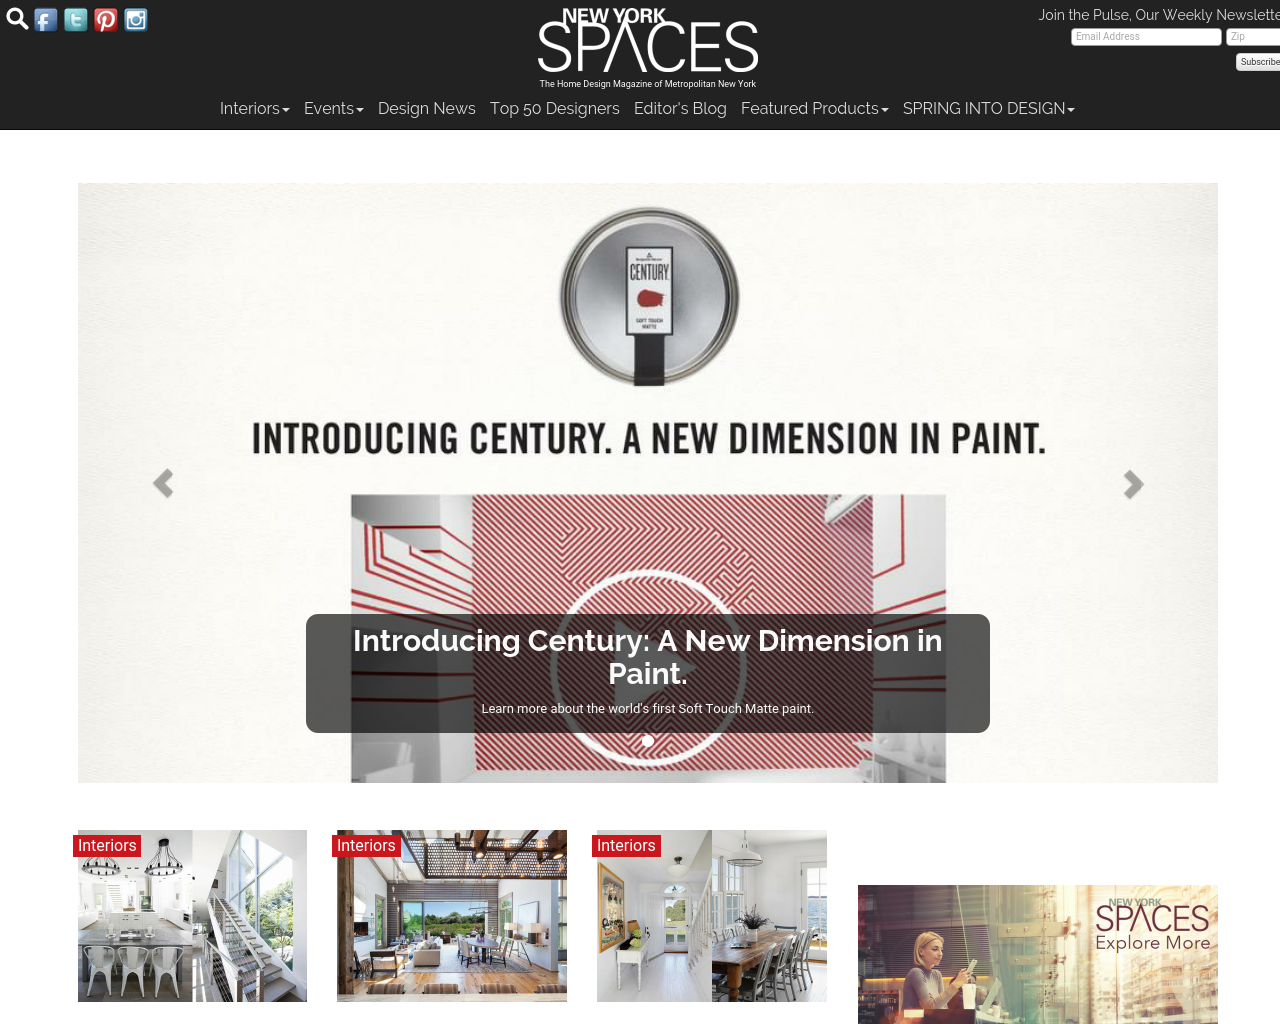 New-York-Spaces-Advertising-Reviews-Pricing